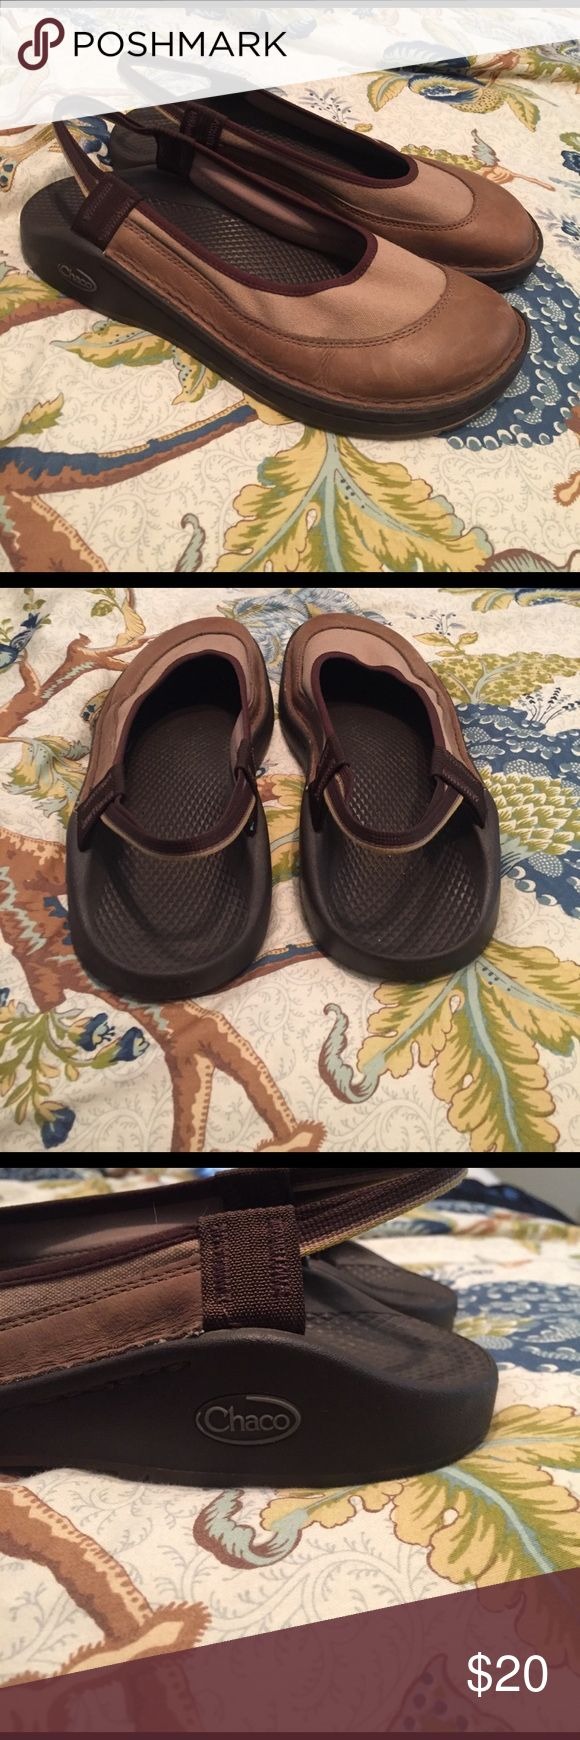 Chaco slingback closed toe shoes Awesome and rare Chaco shoes! Size 10! Super cute! Chaco Shoes